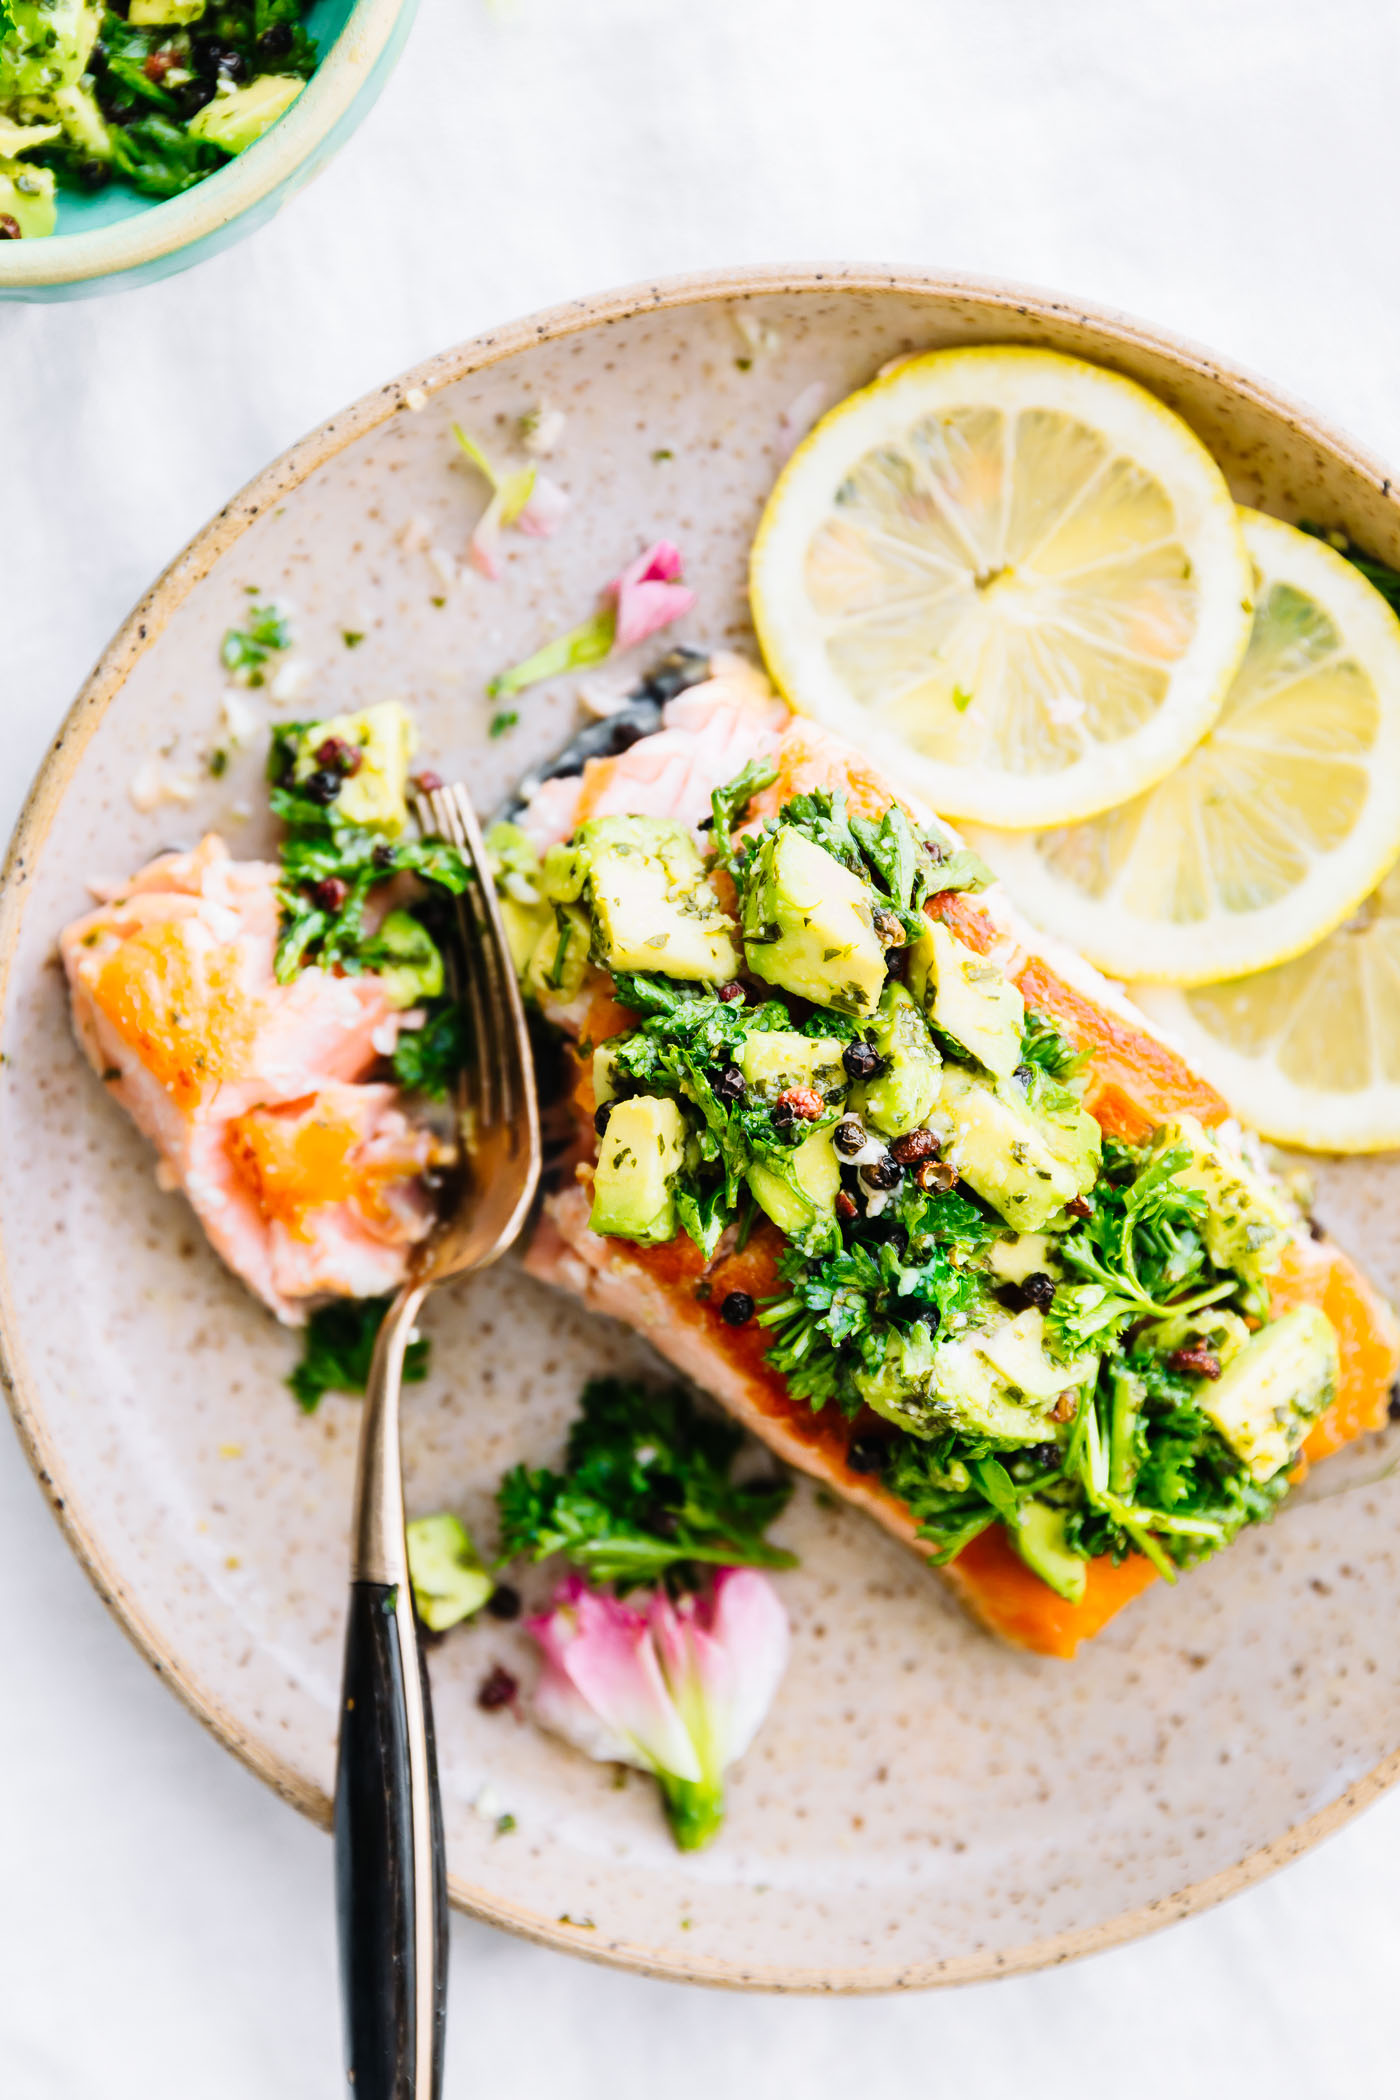 salmon, avocado gremolata pan seared on plate